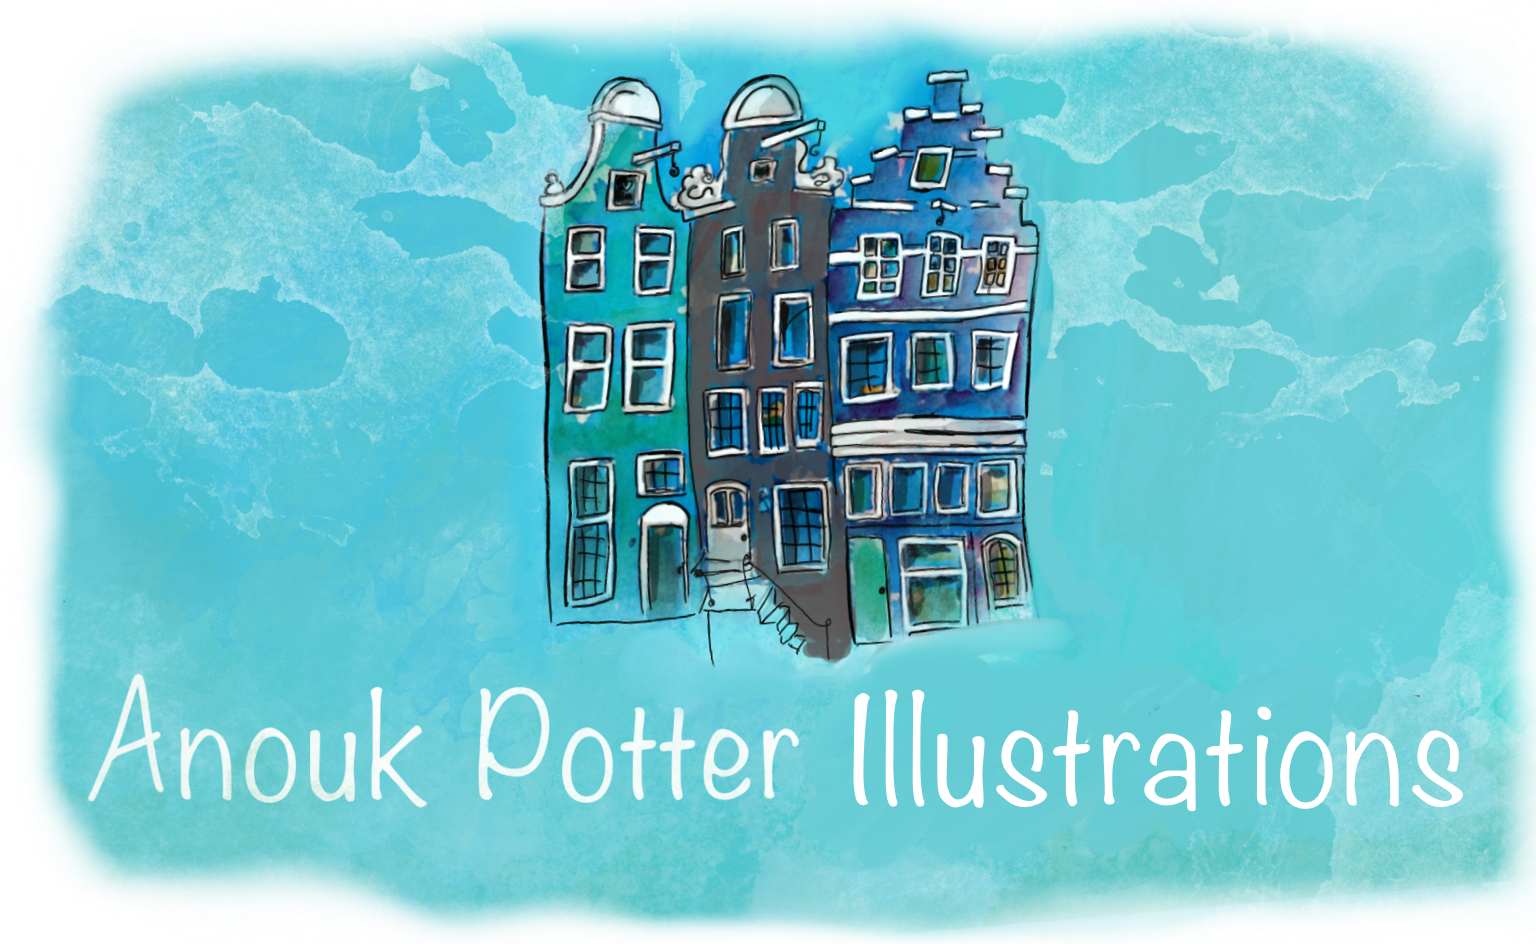 Anouk Potter Illustrations